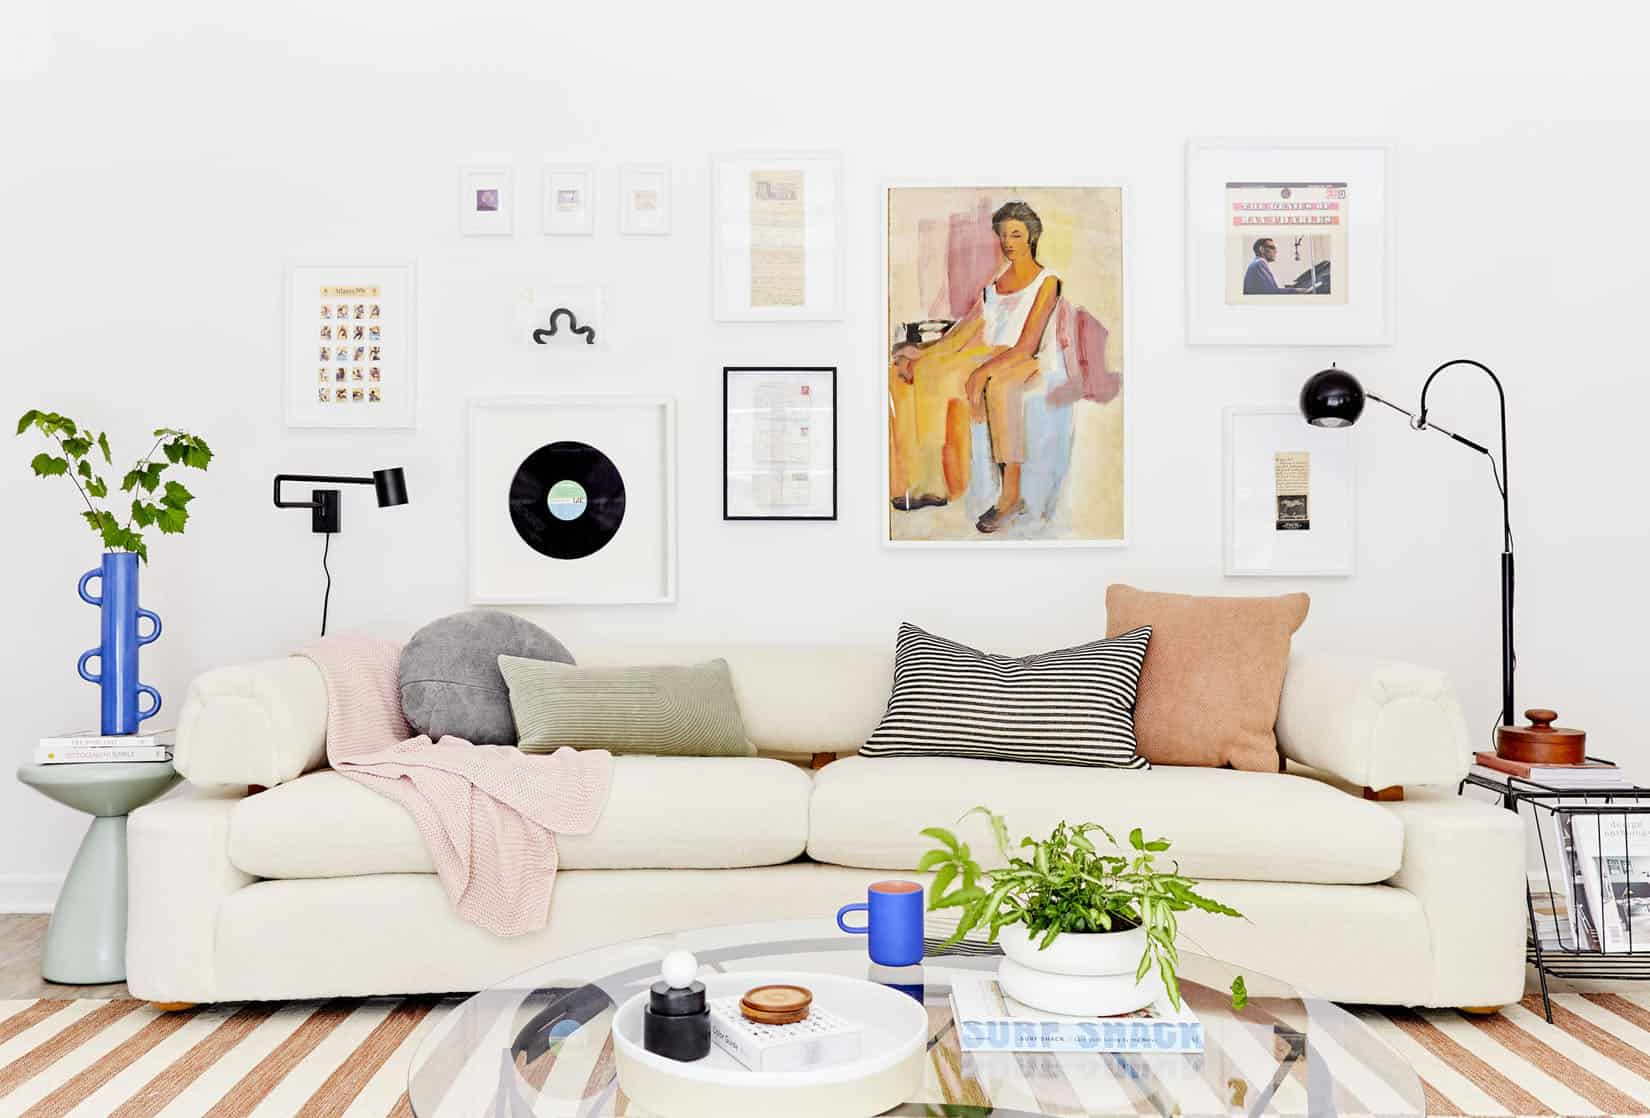 How To Actually Make A Gallery Wall Our No Fail Formula We Use Every Time Our Favorite Original Art Resources Emily Henderson